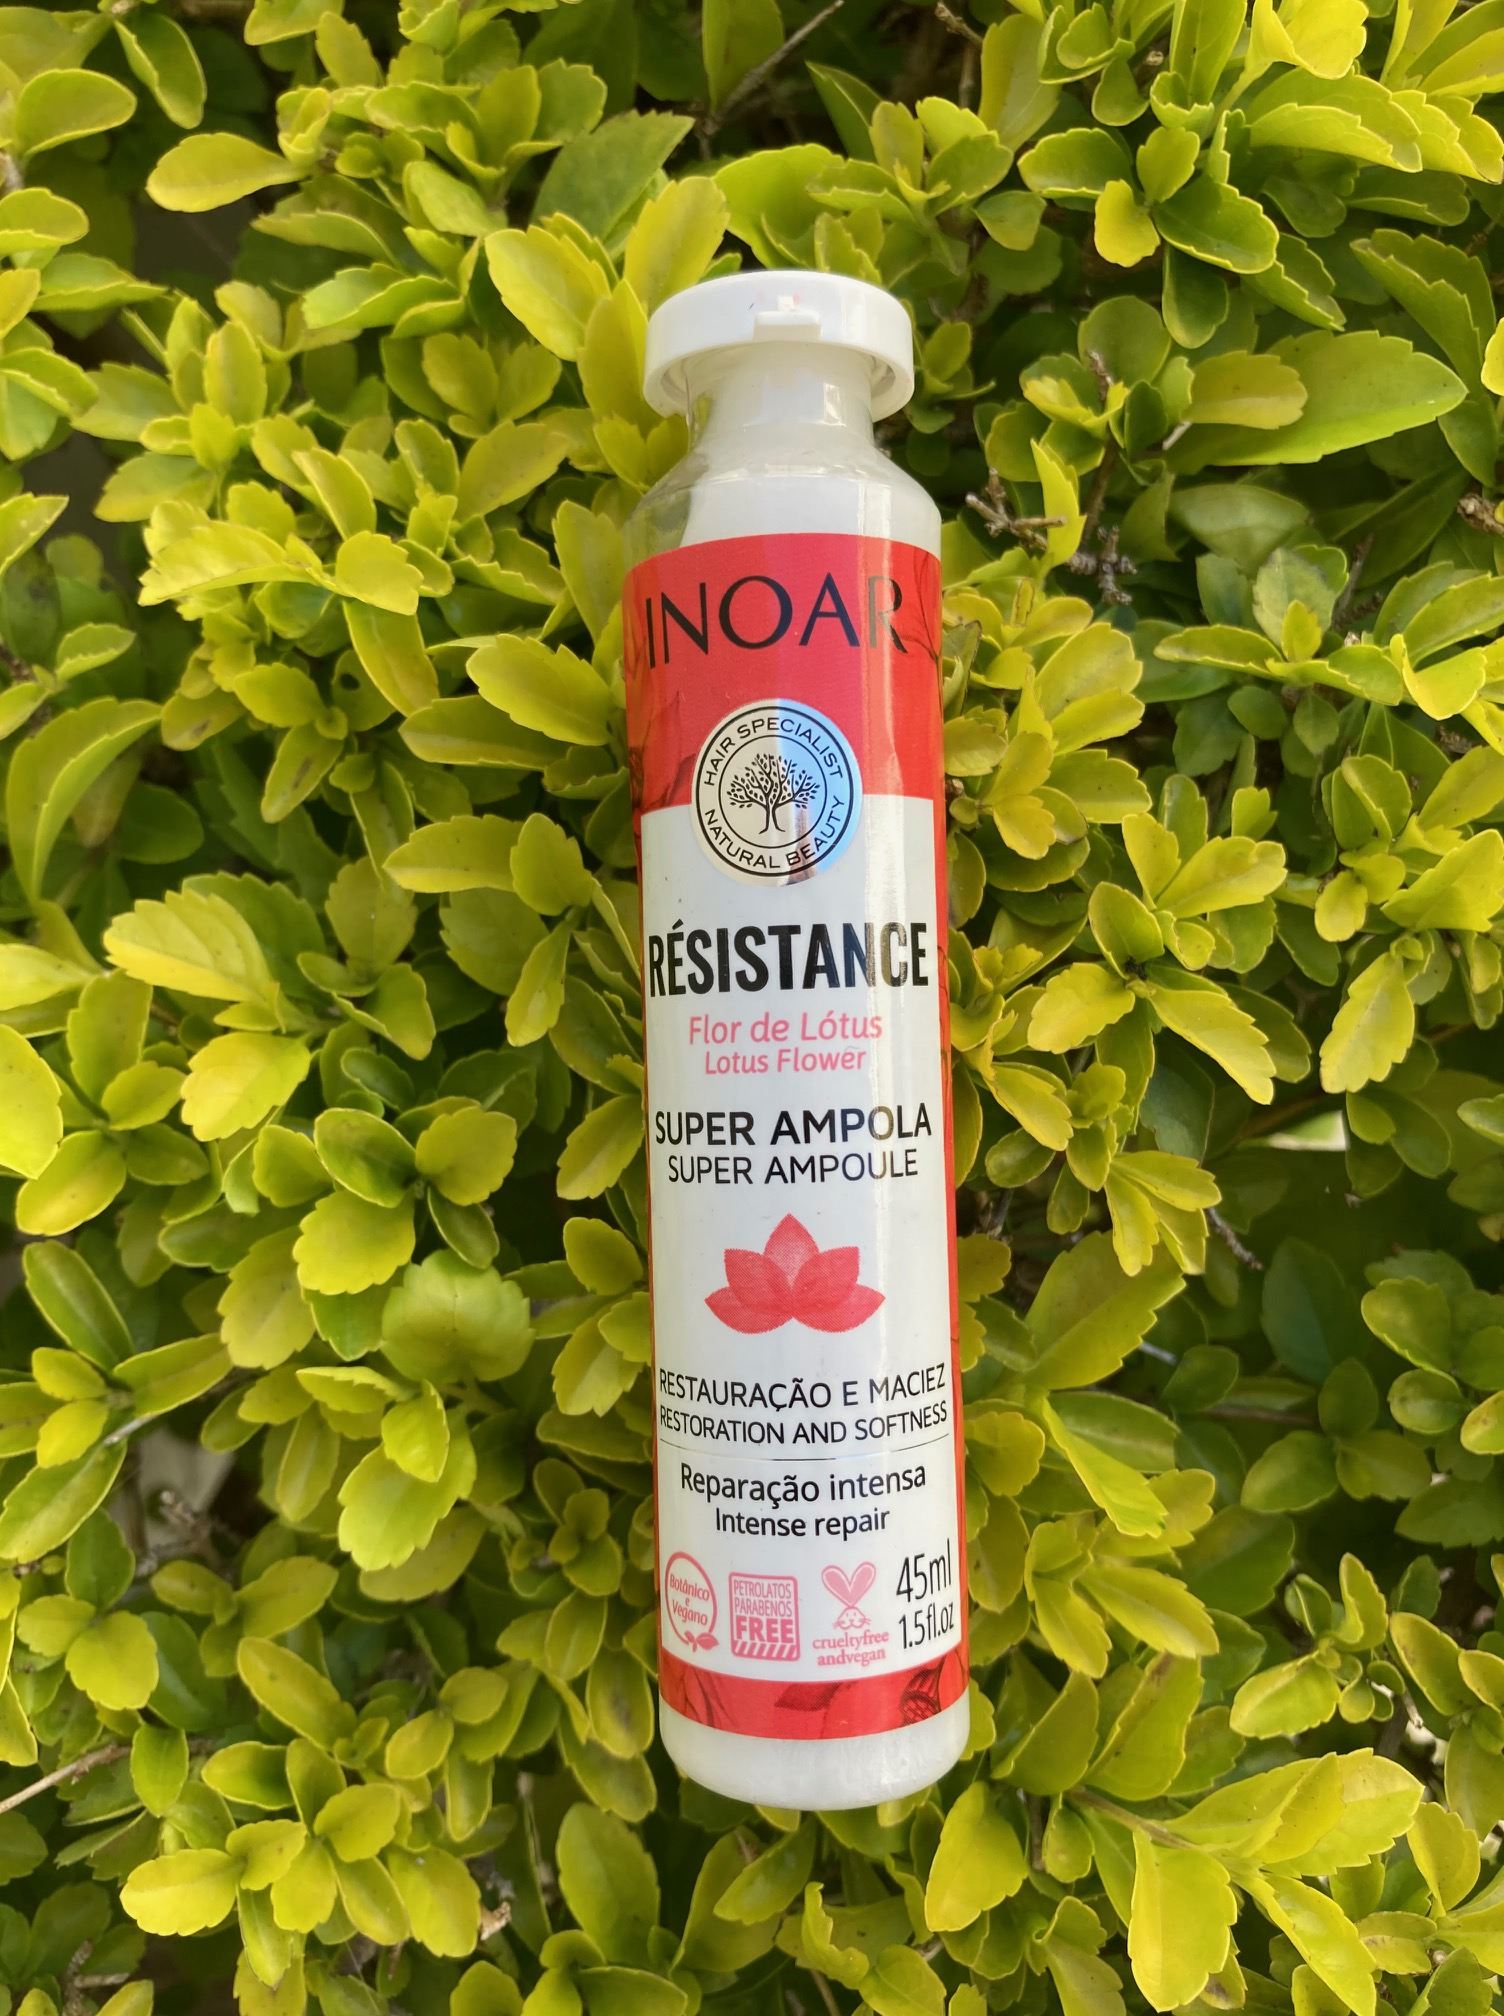 REVIEW: INOAR Resistance Lotus Super Ampoule